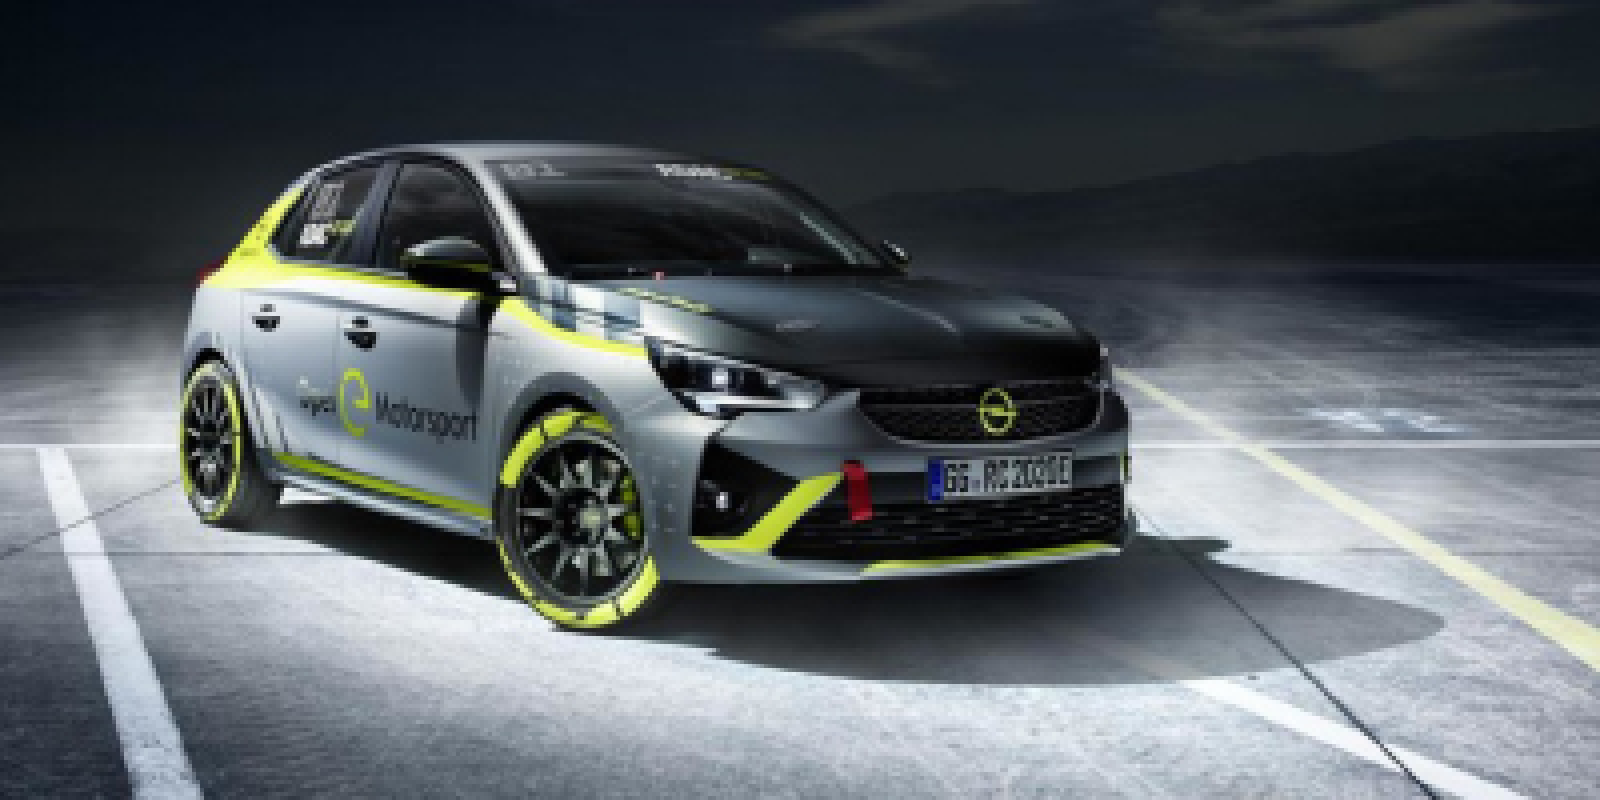 Electric rally car based on Vauxhall Corsa-e to debut at IAA